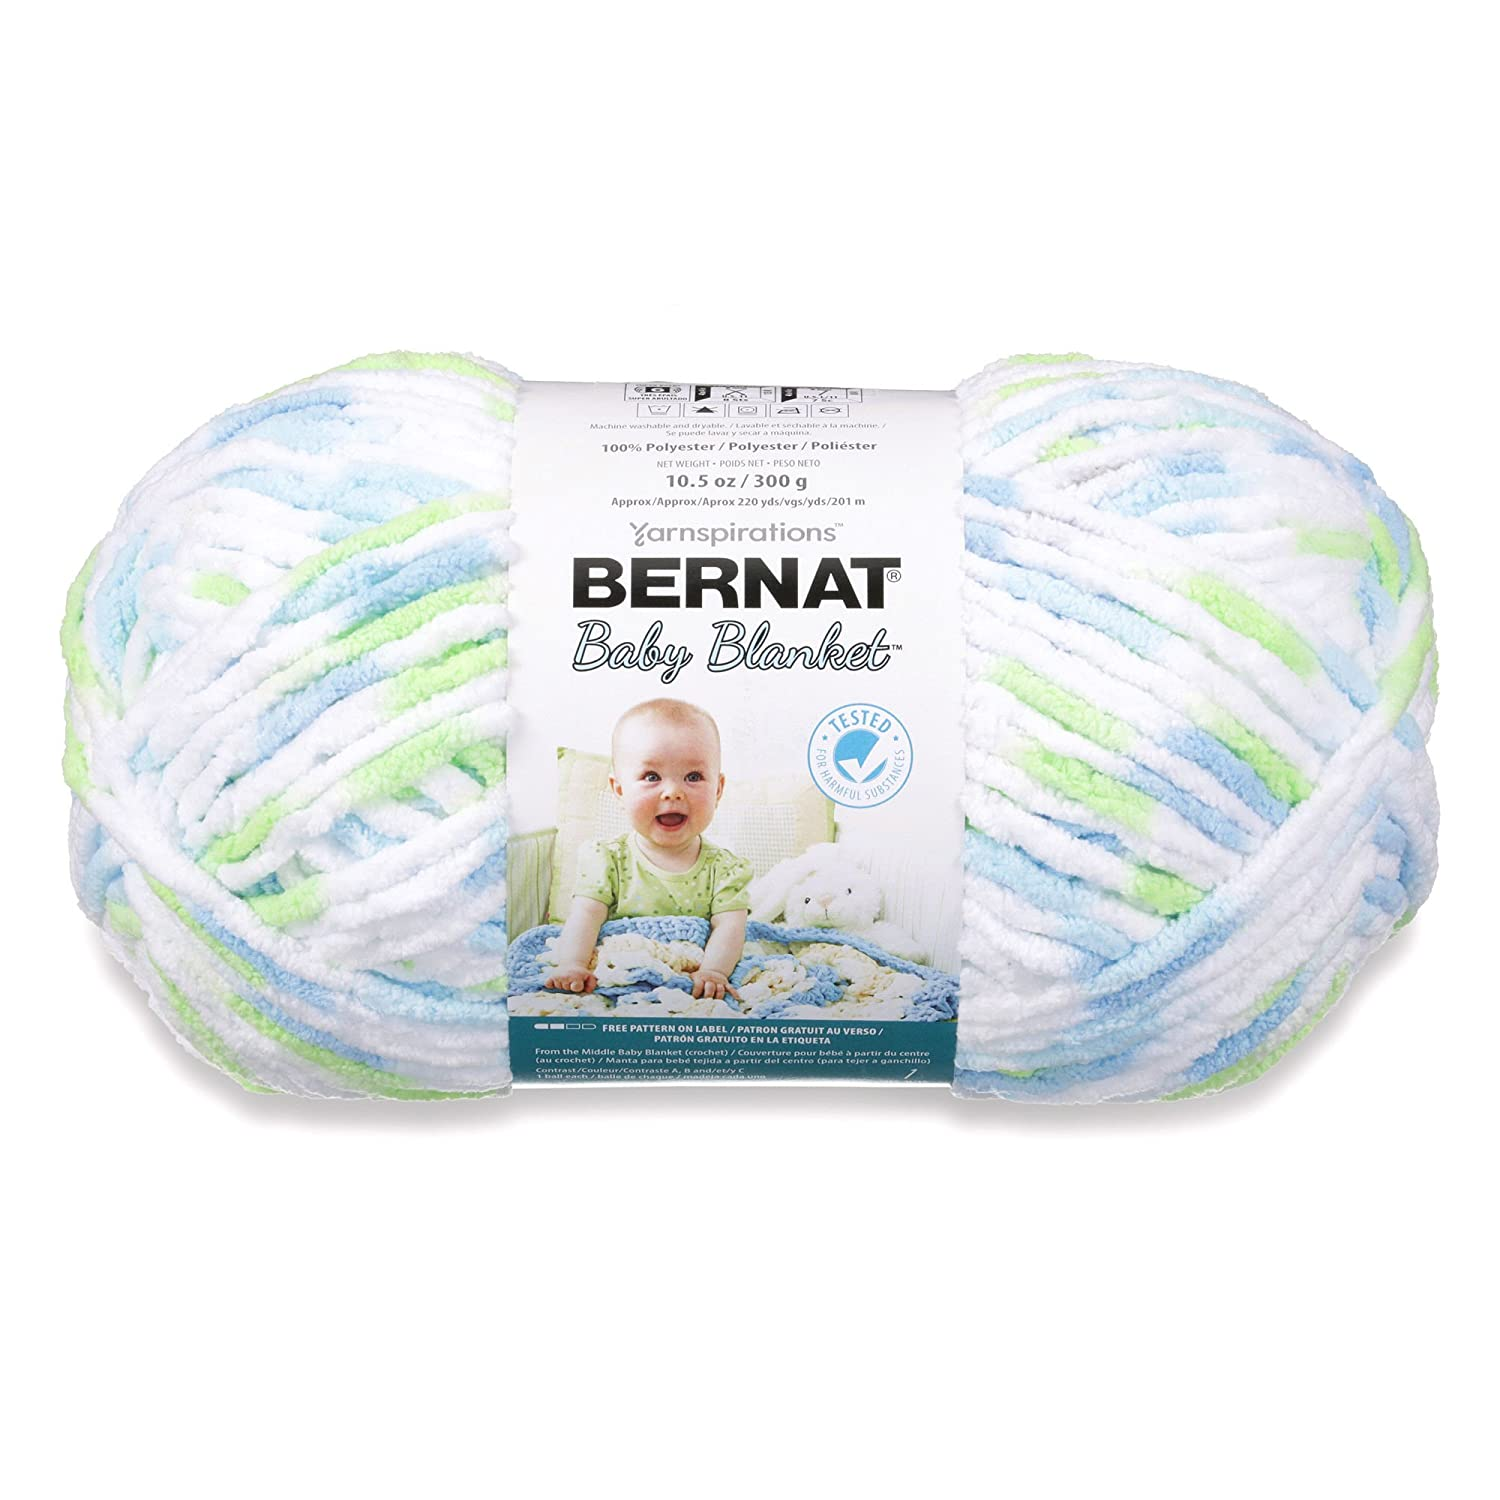 Bernat Baby Blanket Yarn - (6) Super Bulky Gauge - 10.5 oz - Funny Prints - Single Ball Machine Wash & Dry (16110404233) 1481 West Second Street